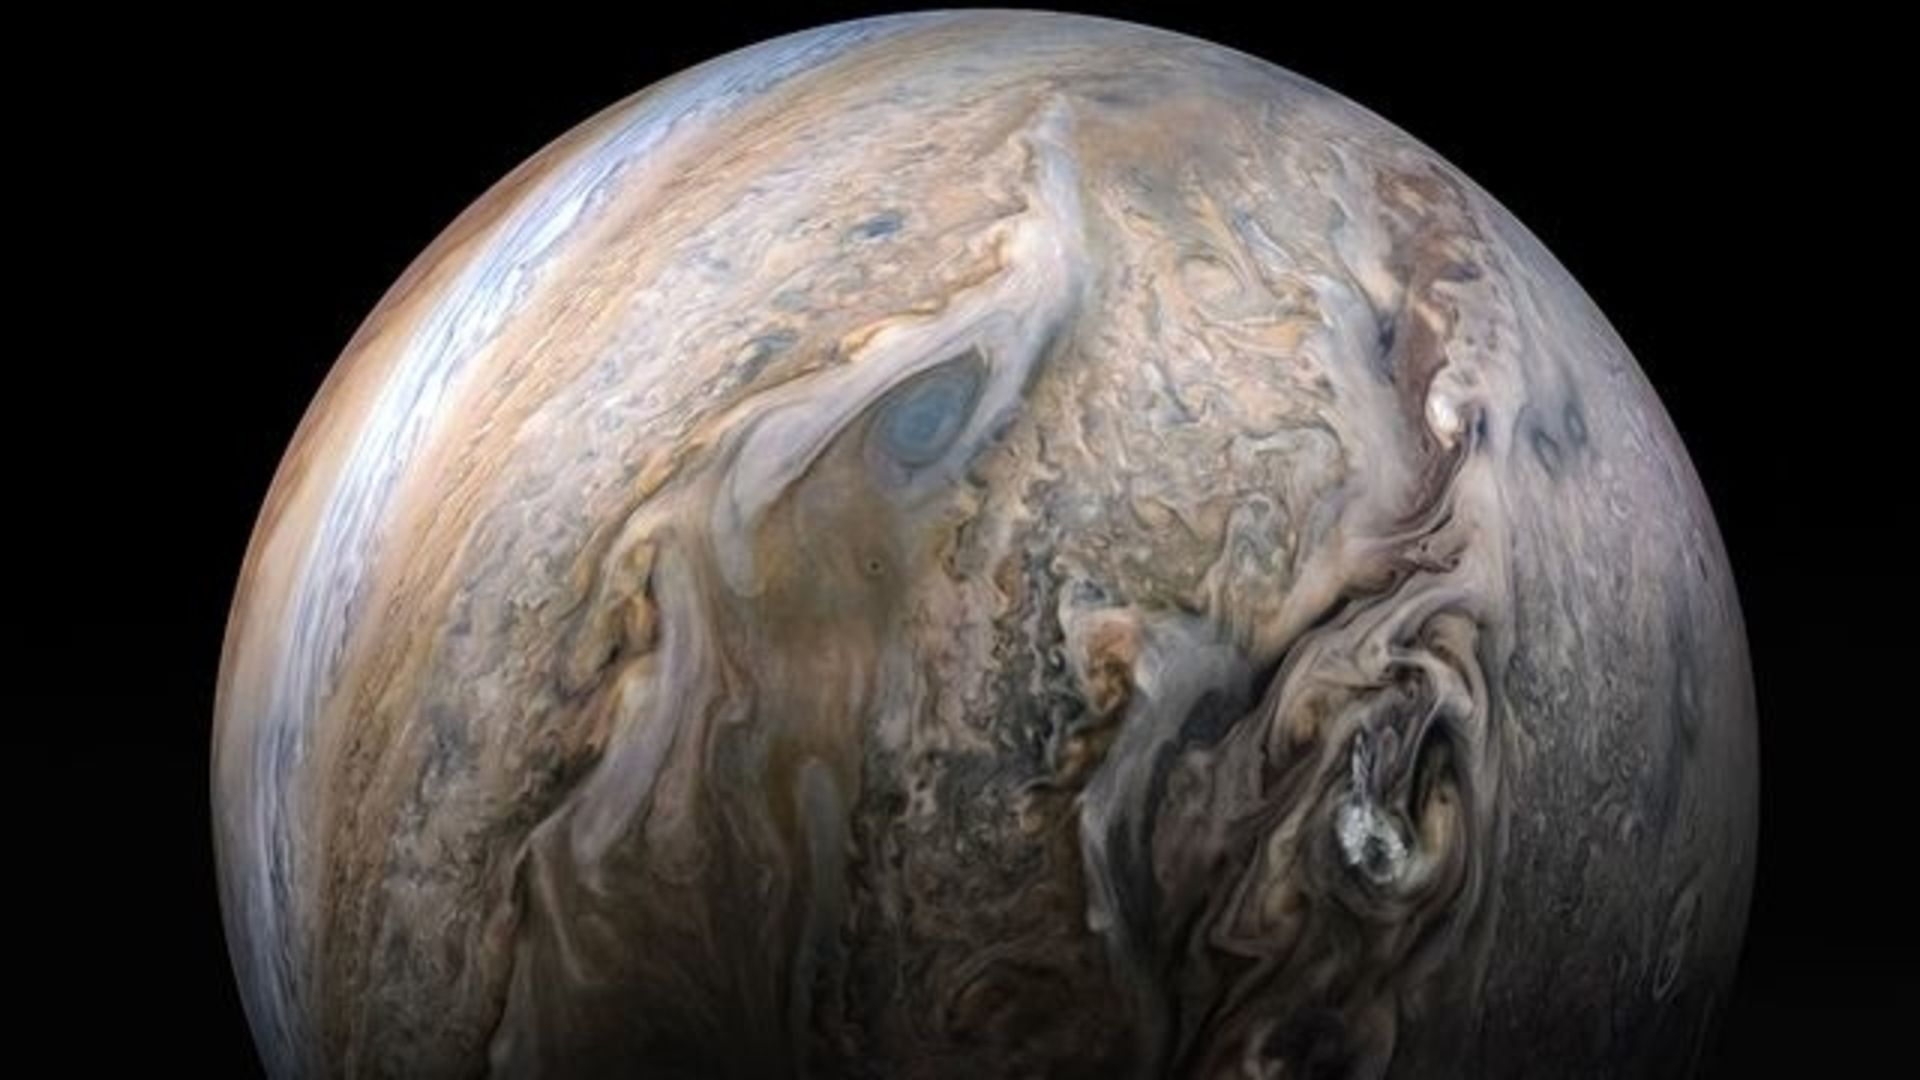 NASA's Juno spacecraft avoids Jupiter's shadow to stay alive